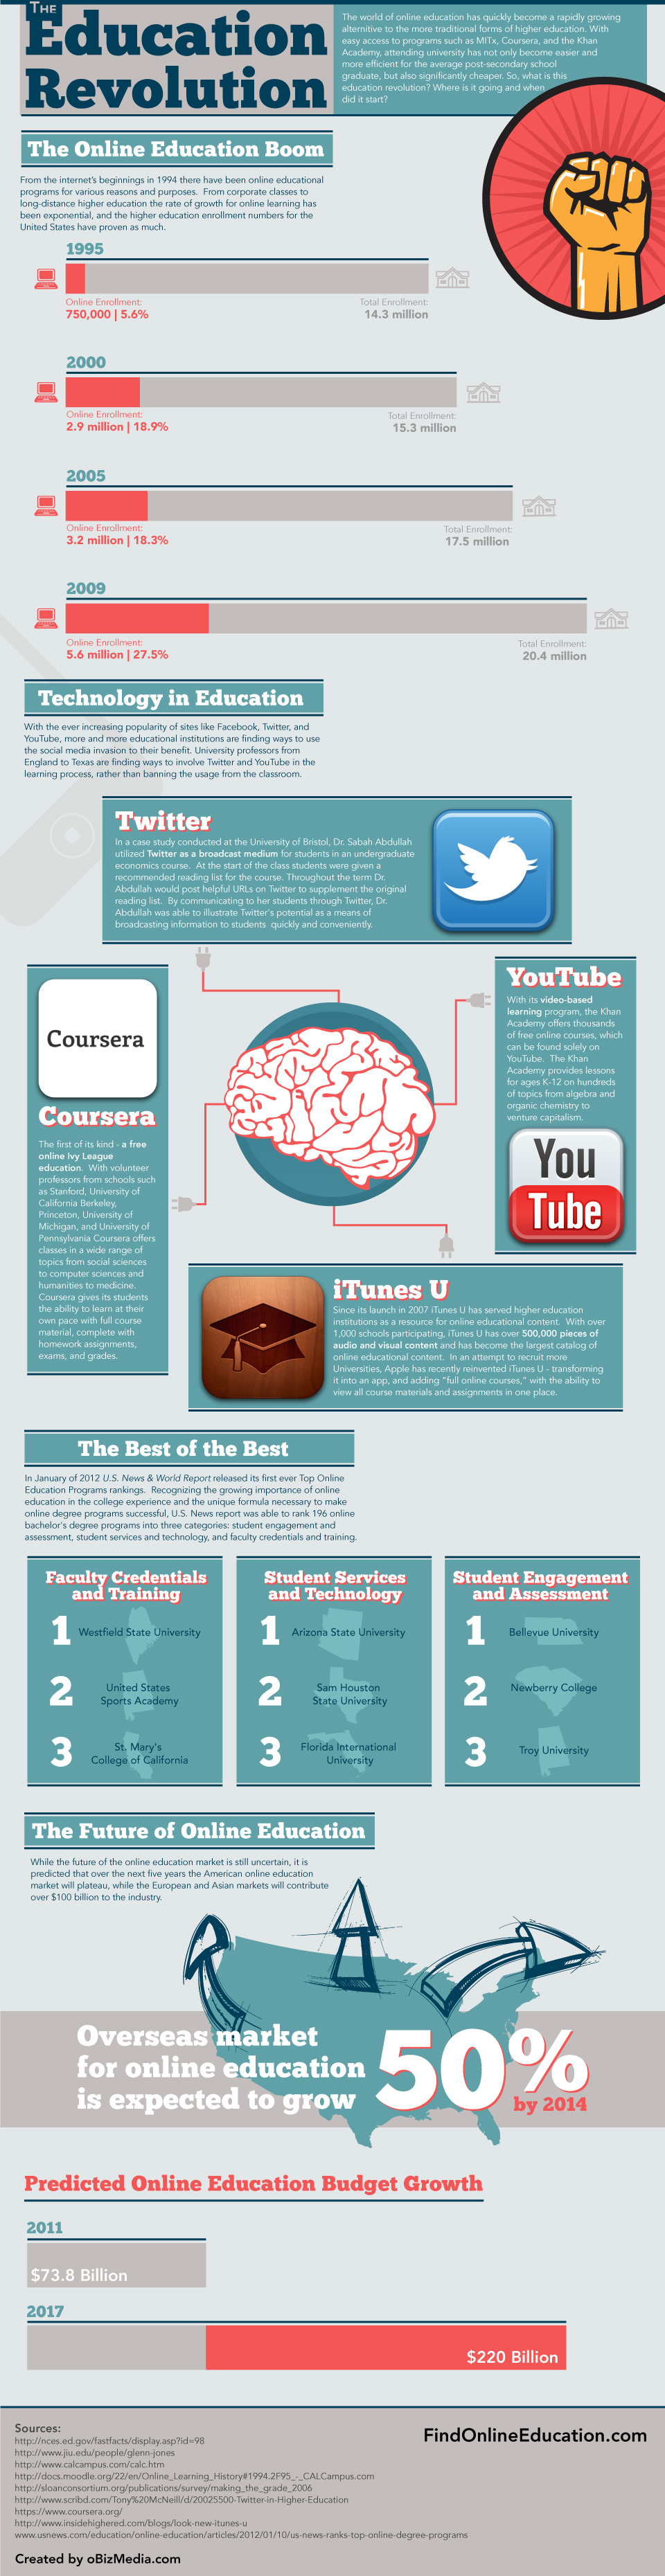 Online Education Revolution-infographic